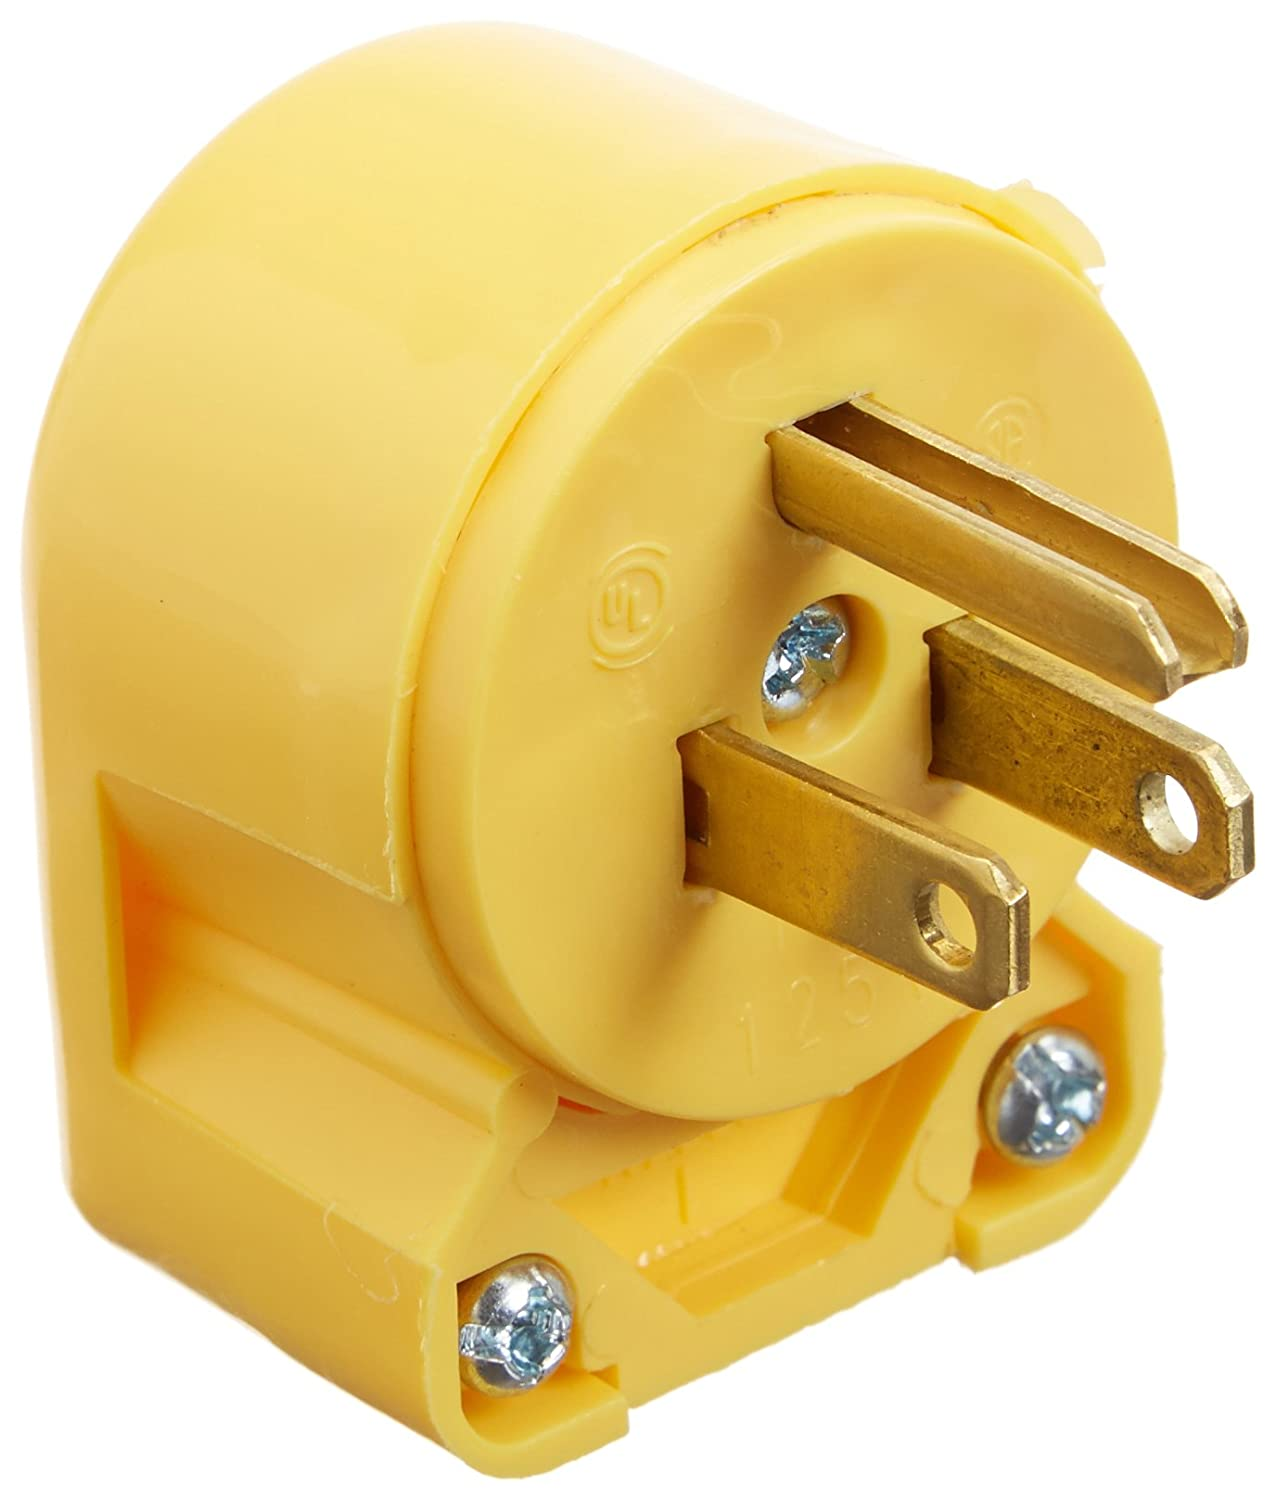 Eaton 4867an Box 15 Amp 3 Wire 125v Ac 2 Pole Heavy Duty Grade Vinyl Cooper Wiring Diagram Wall Pack Plug Yellow Electric Plugs